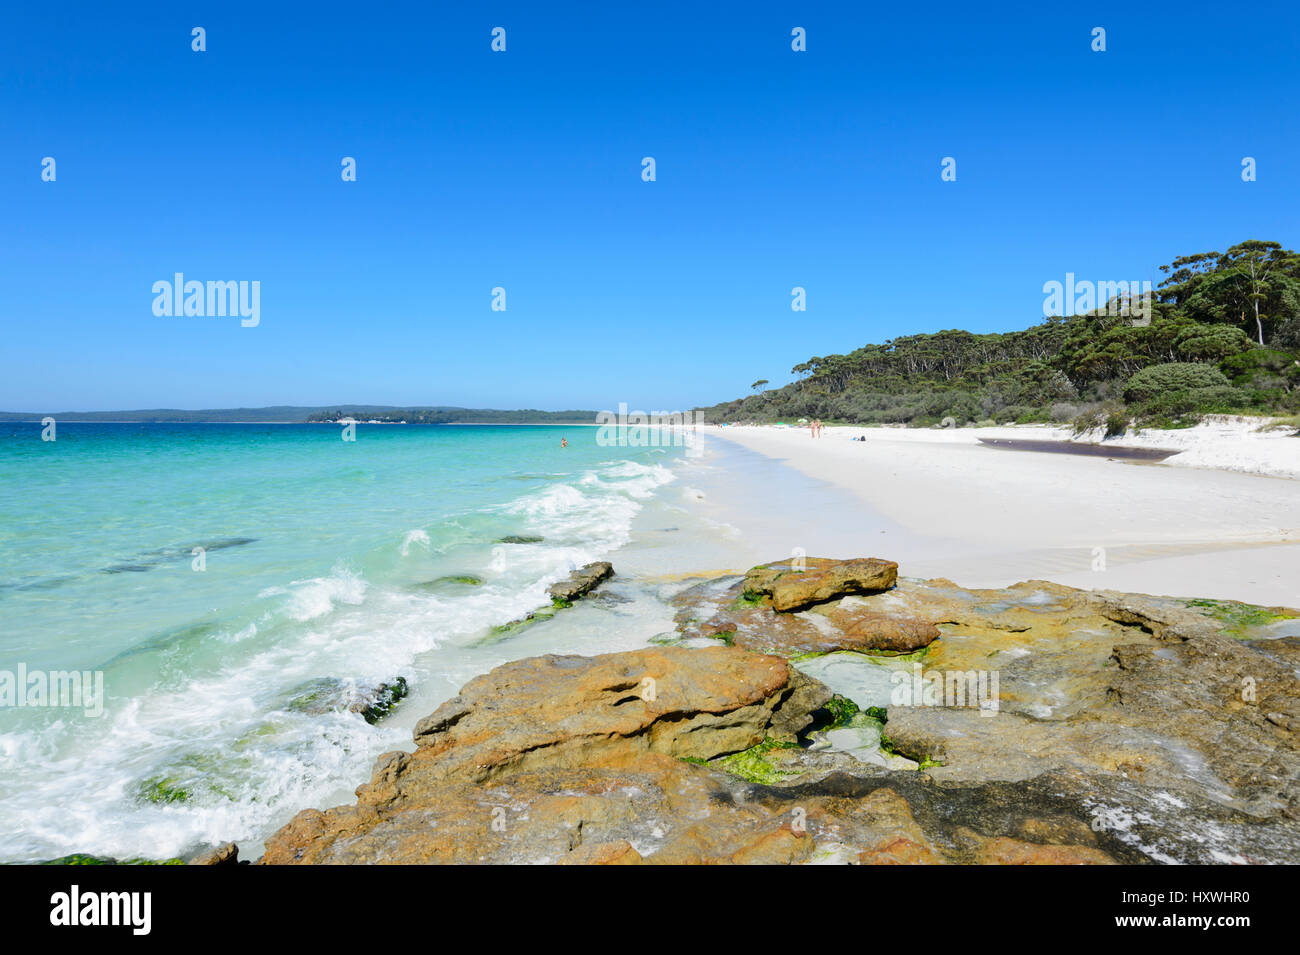 Hyams Beach is a spectacular stretch of Jervis Bay with fine white sand, New South Wales, NSW, Australia - Stock Image